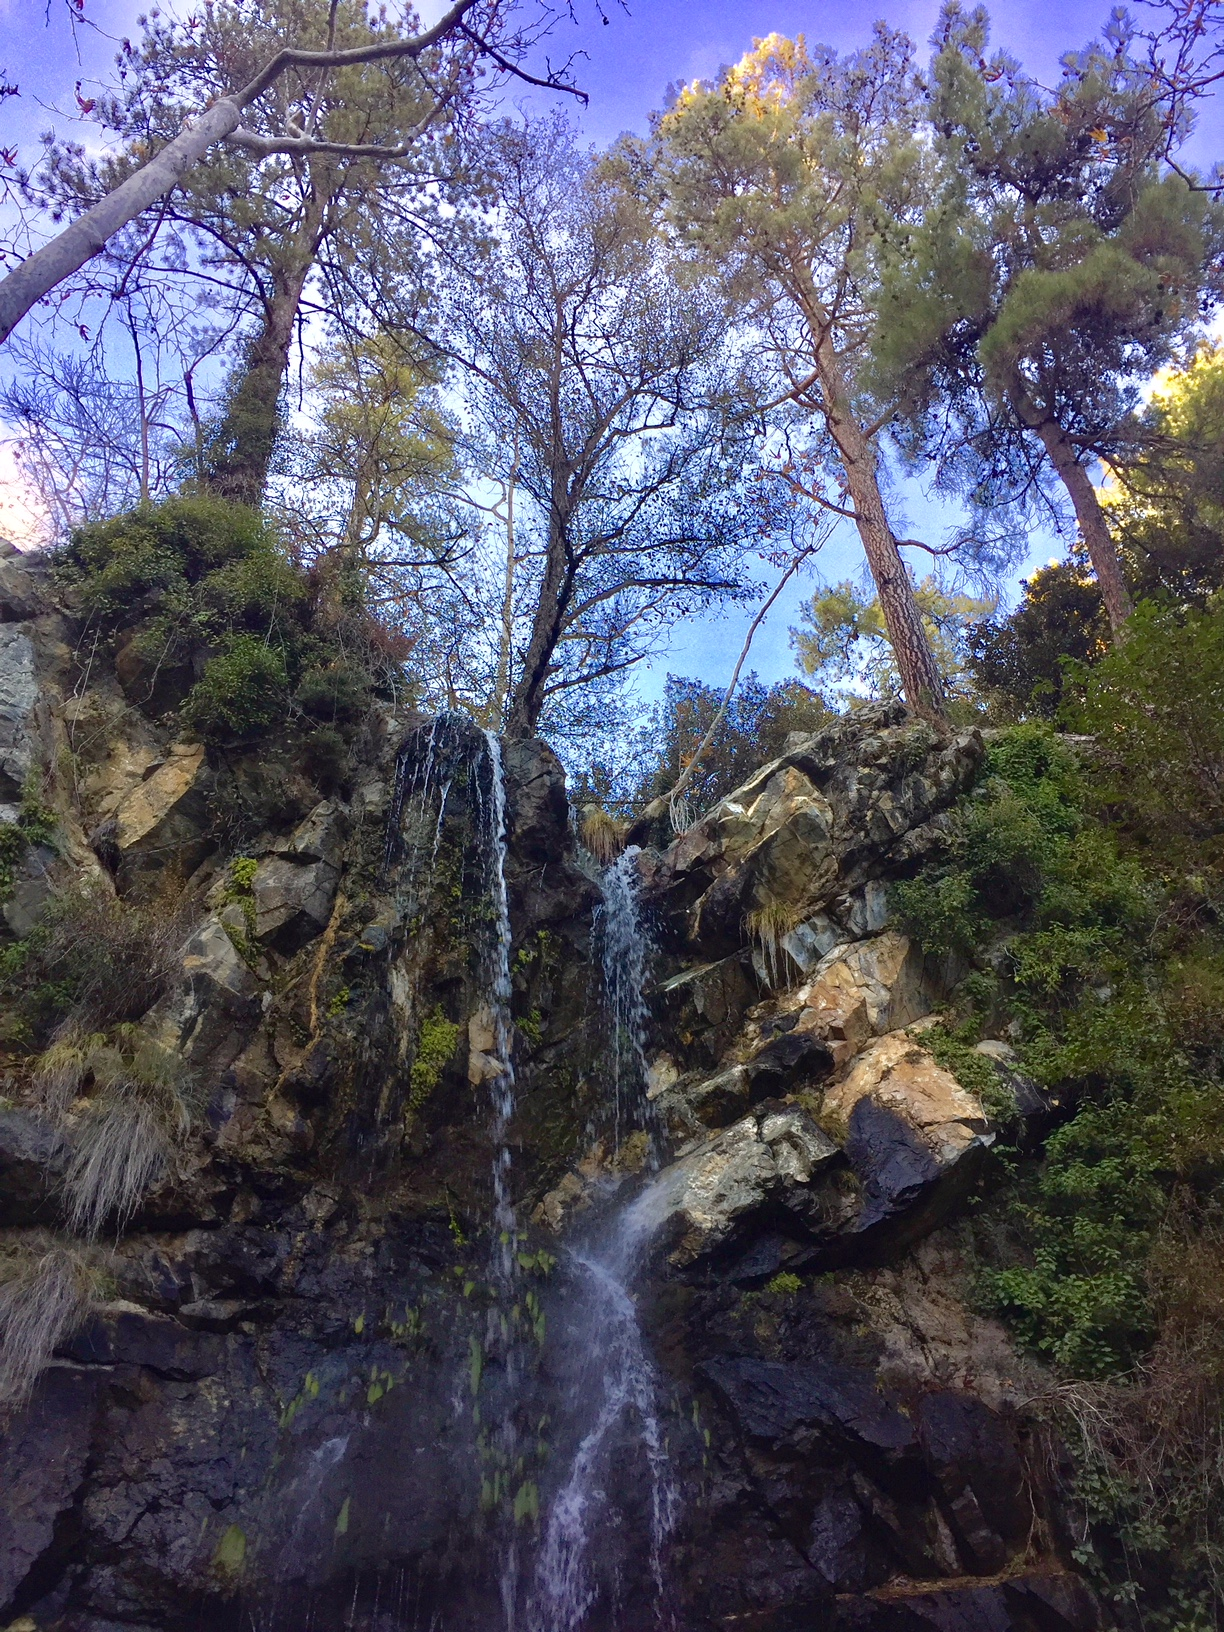 06 PIC OF WATERFALL